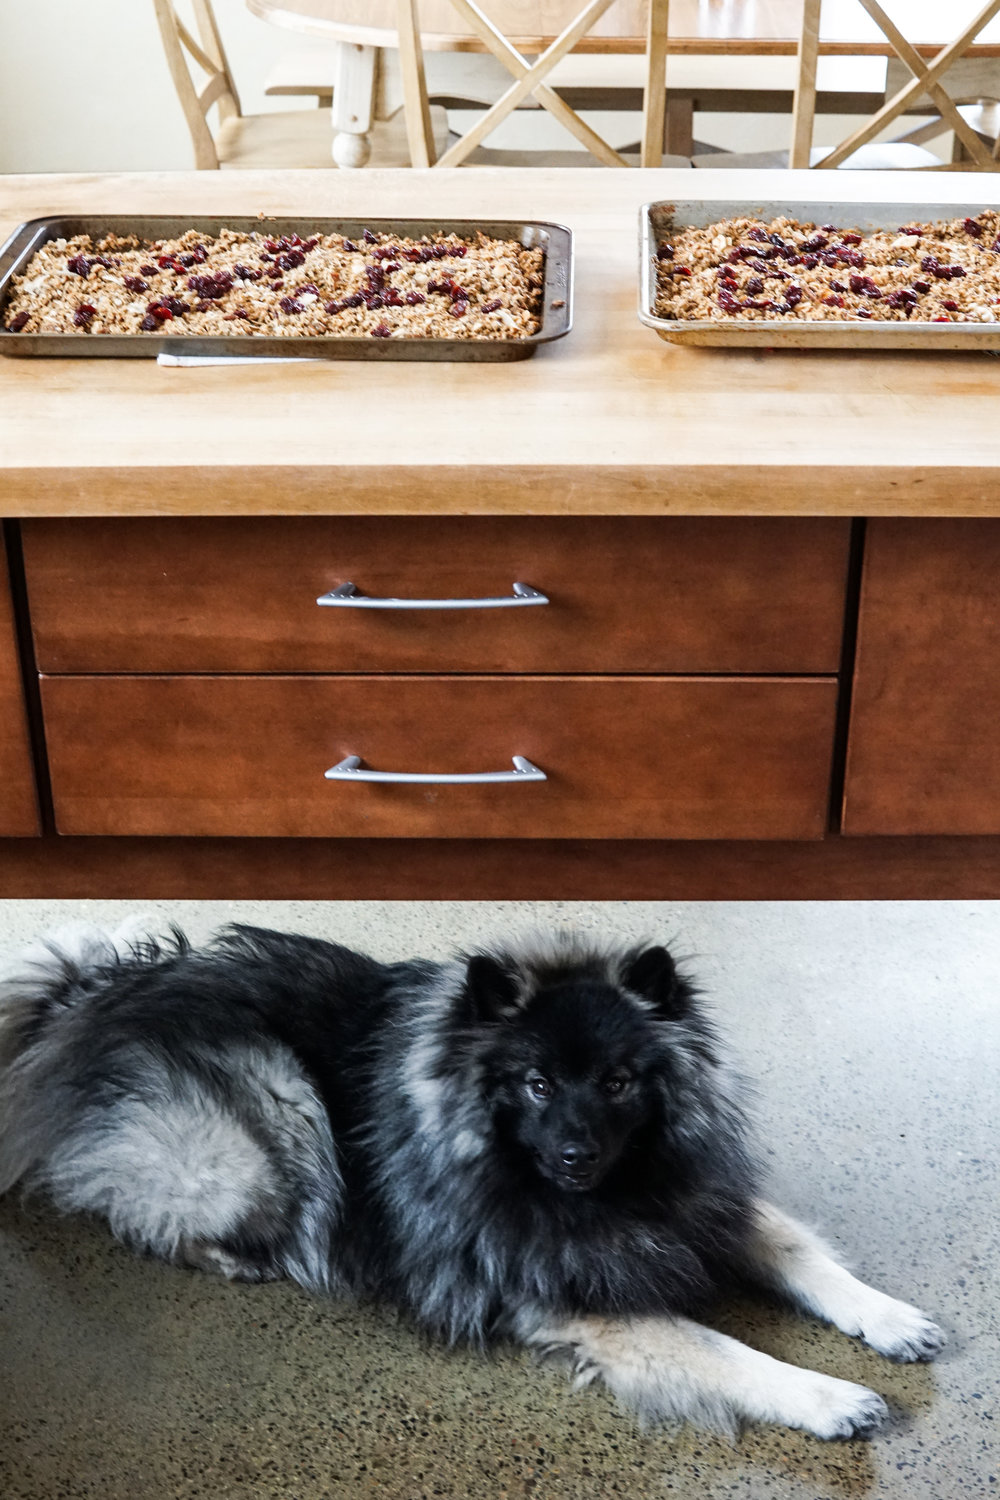 Gambit guards the granola.